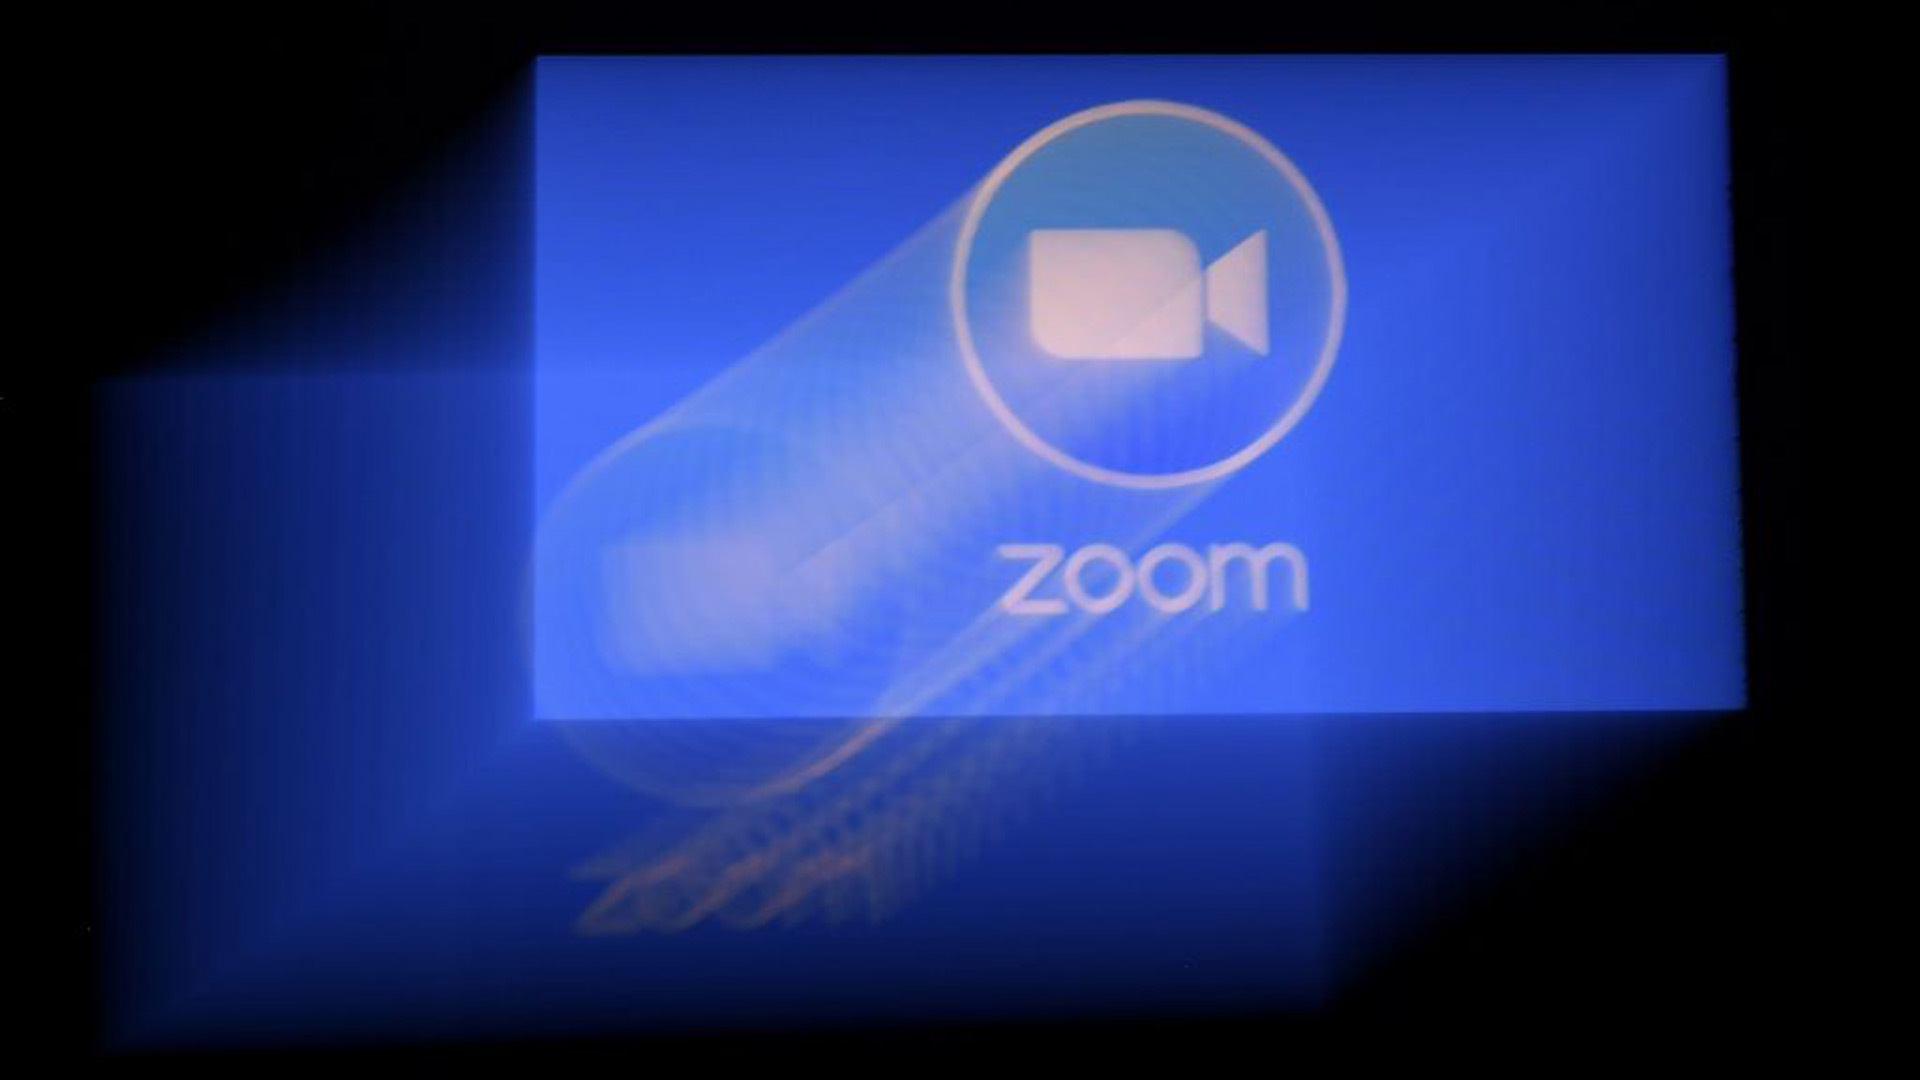 Zoom invite scam: Don't click that phony 'reactivate' or 'reschedule' link!